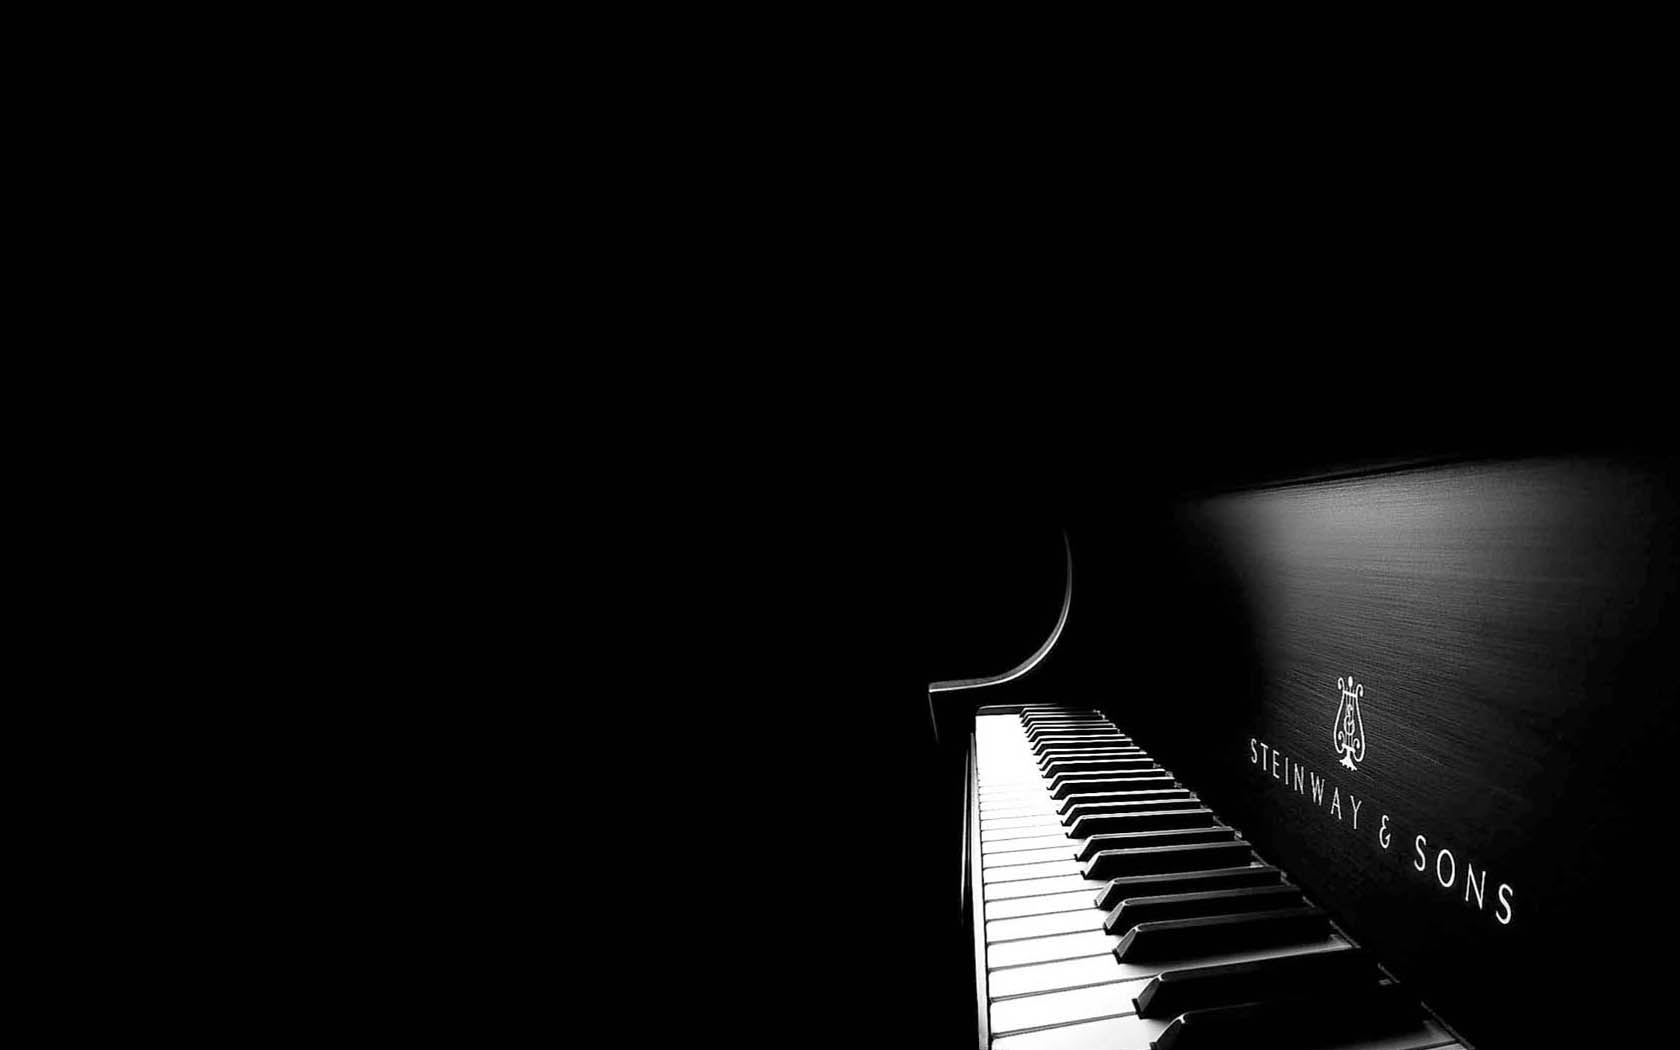 83 piano hd wallpapers backgrounds wallpaper abyss - Cool piano backgrounds ...